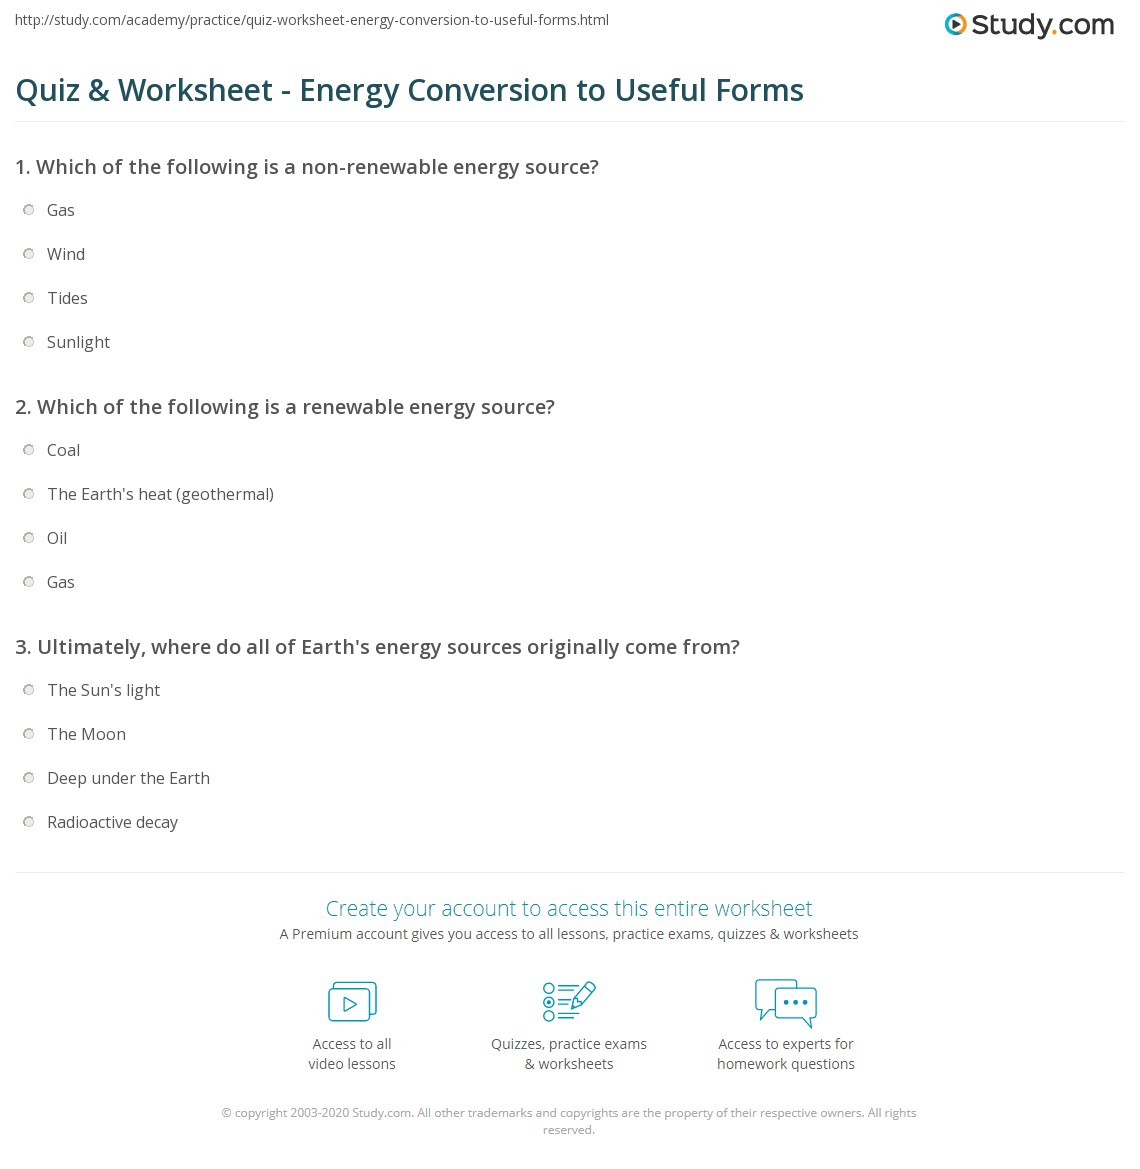 Quiz & Worksheet - Energy Conversion to Useful Forms | Study.com